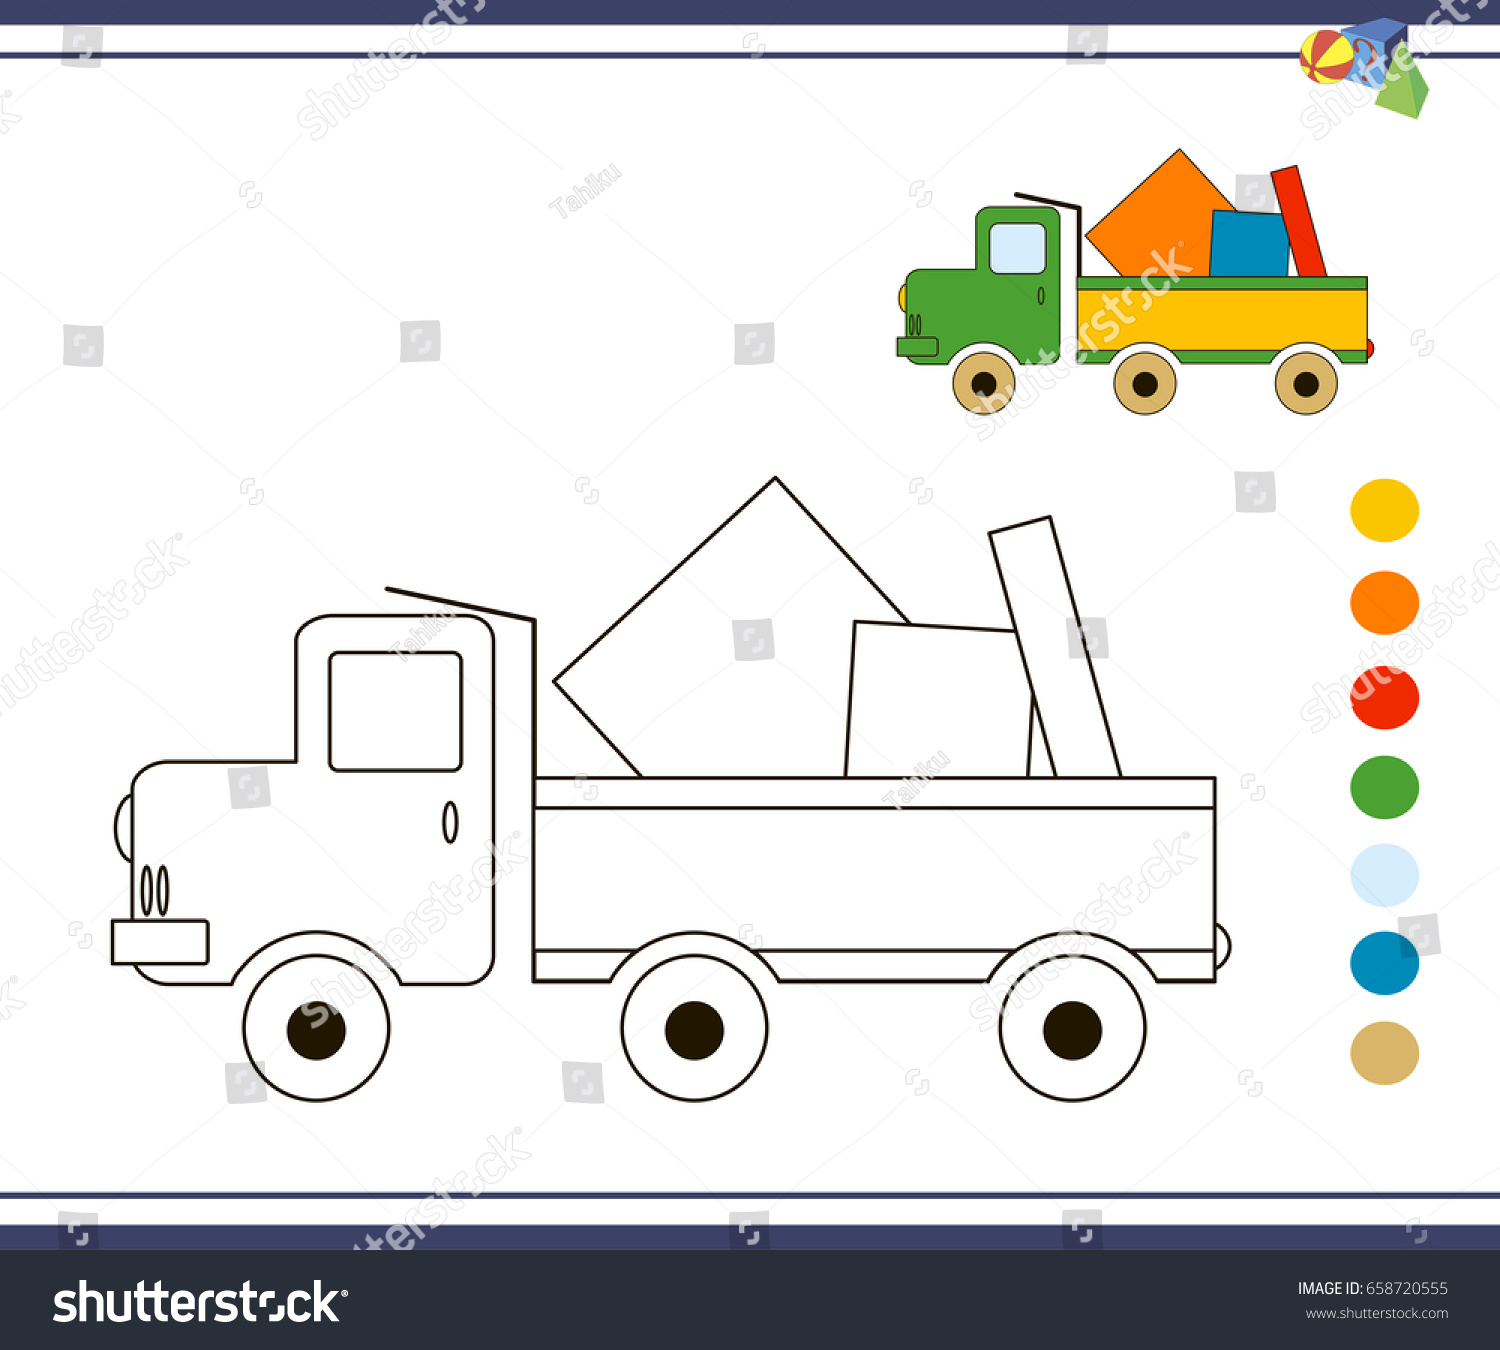 Coloring Pages Children Vector Coloring Book Stock Vector 658720555 ...